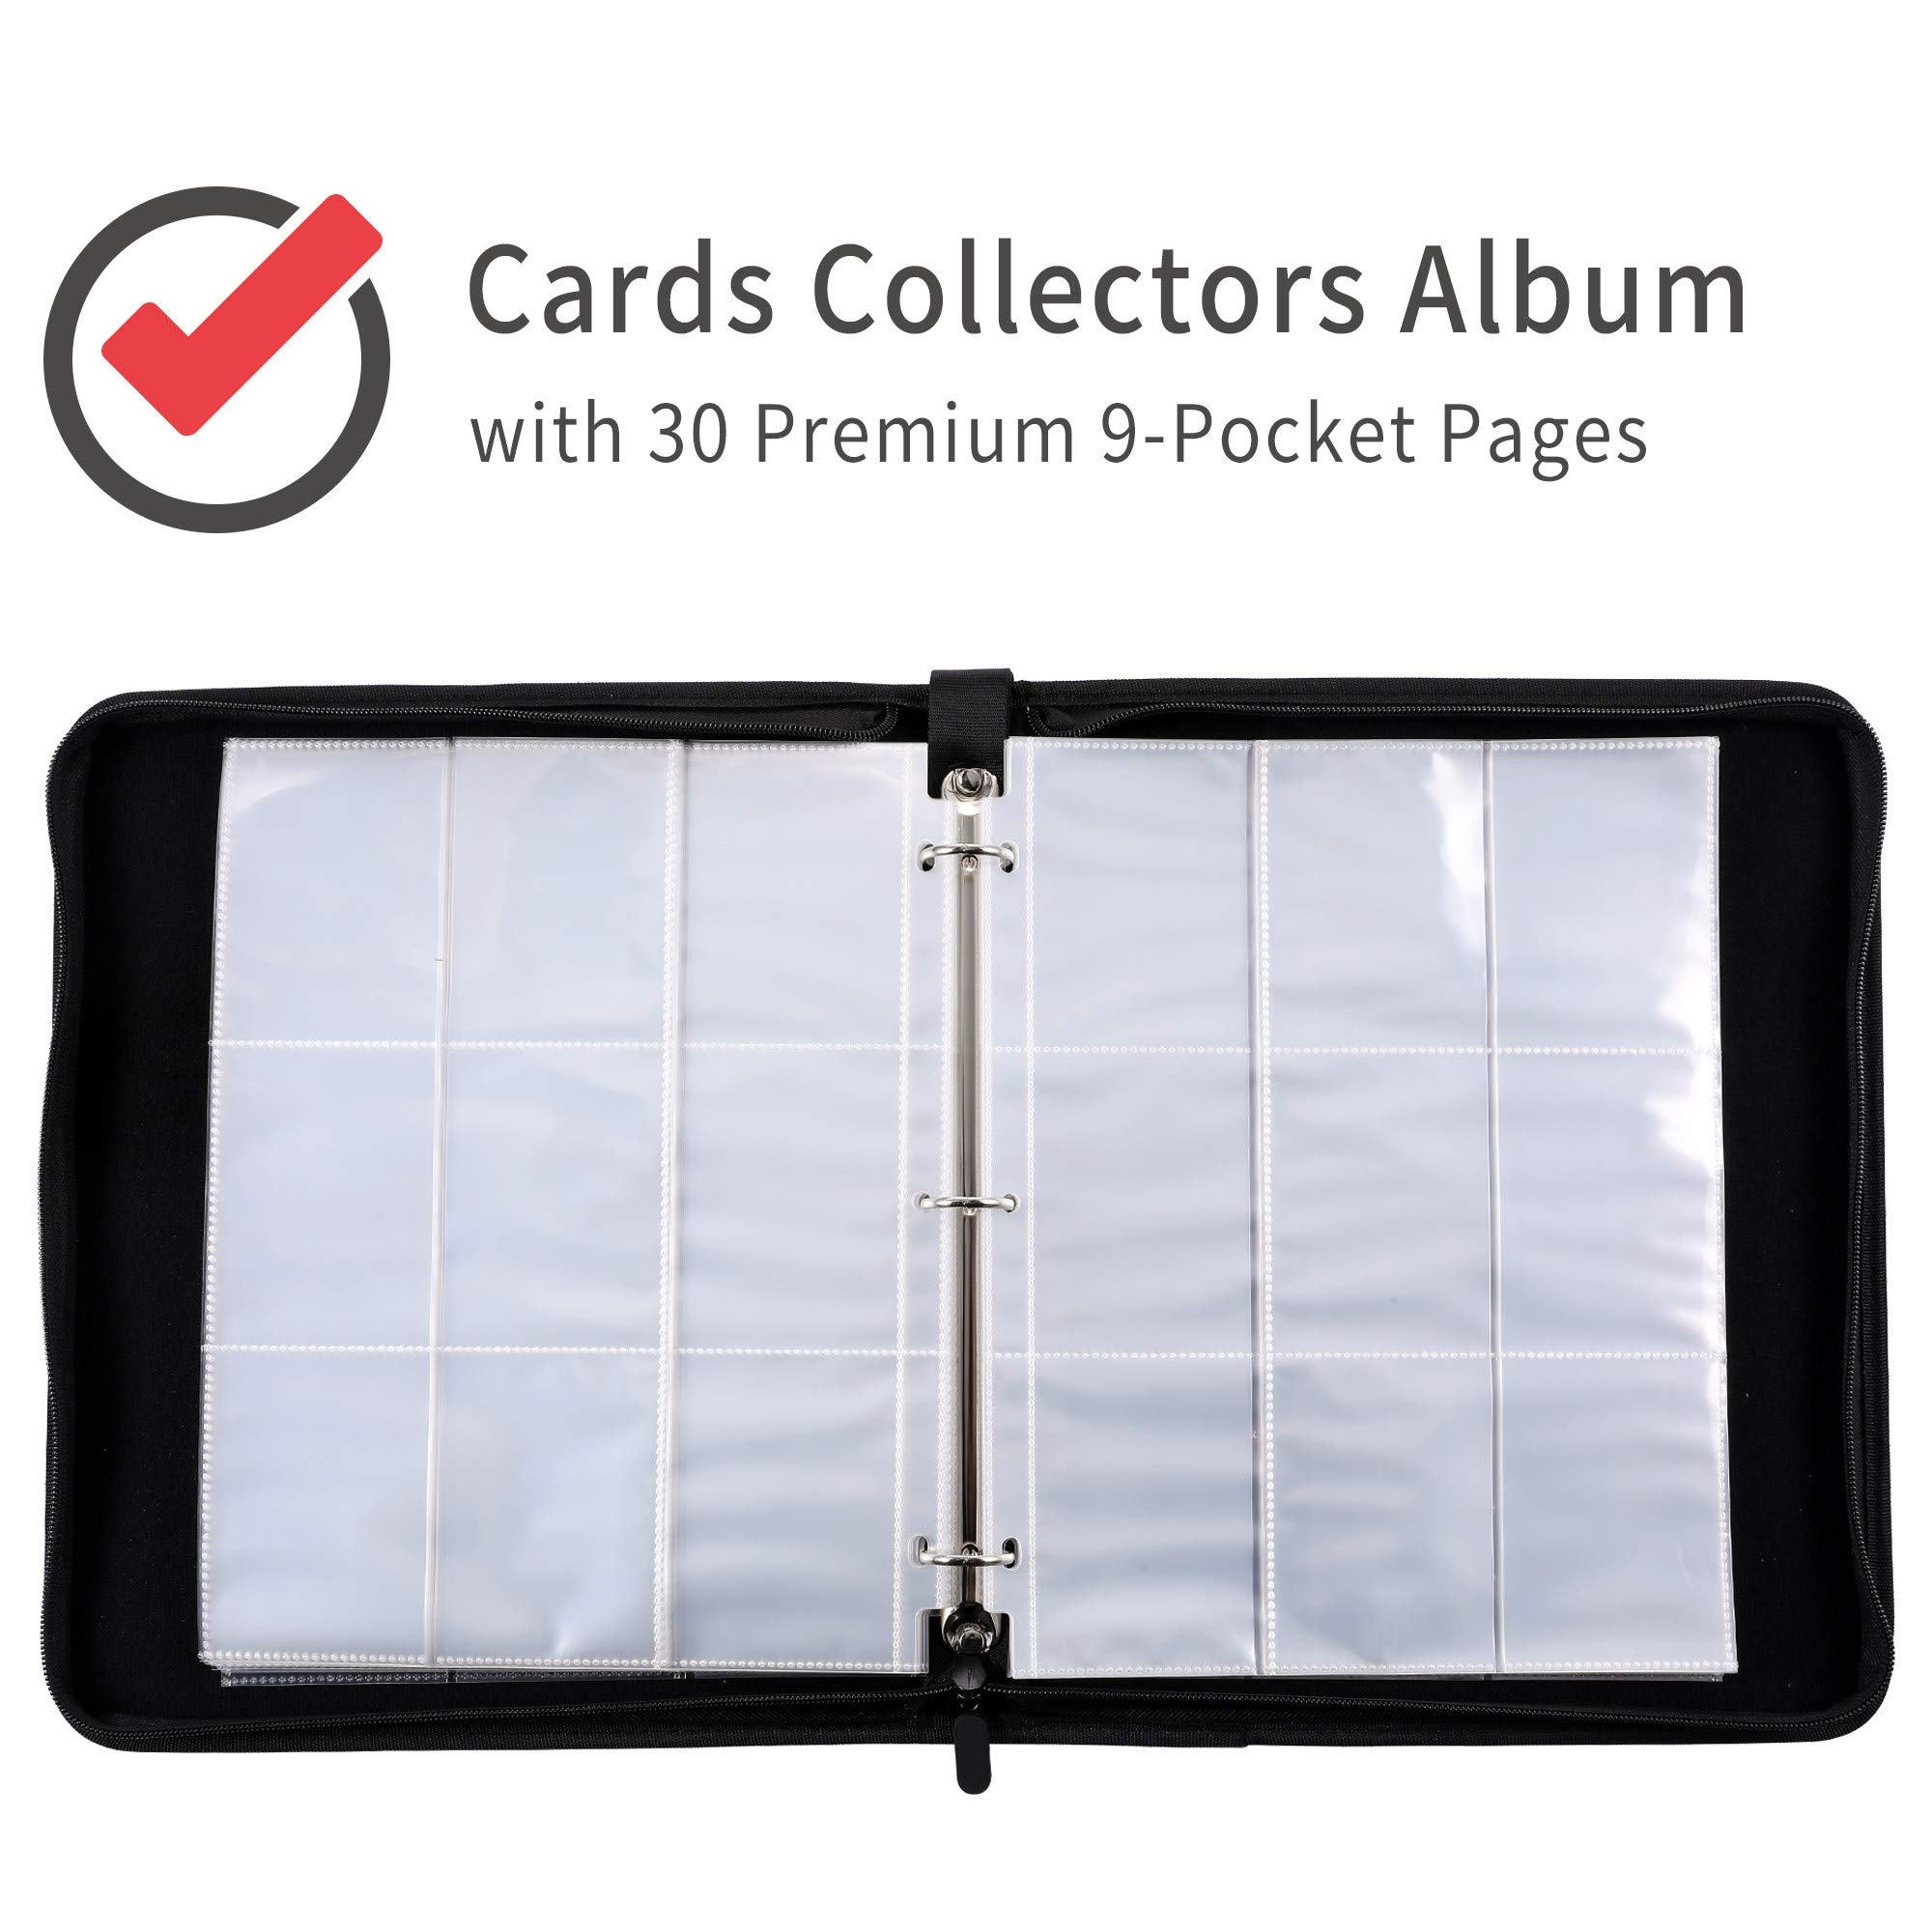 D DACCKIT Carrying Case Compatible with Pokemon Trading Cards, Cards Collectors Album with 30 Premium 9-Pocket Pages, Holds Up to 540 Cards(Red and White Version) by D DACCKIT (Image #4)